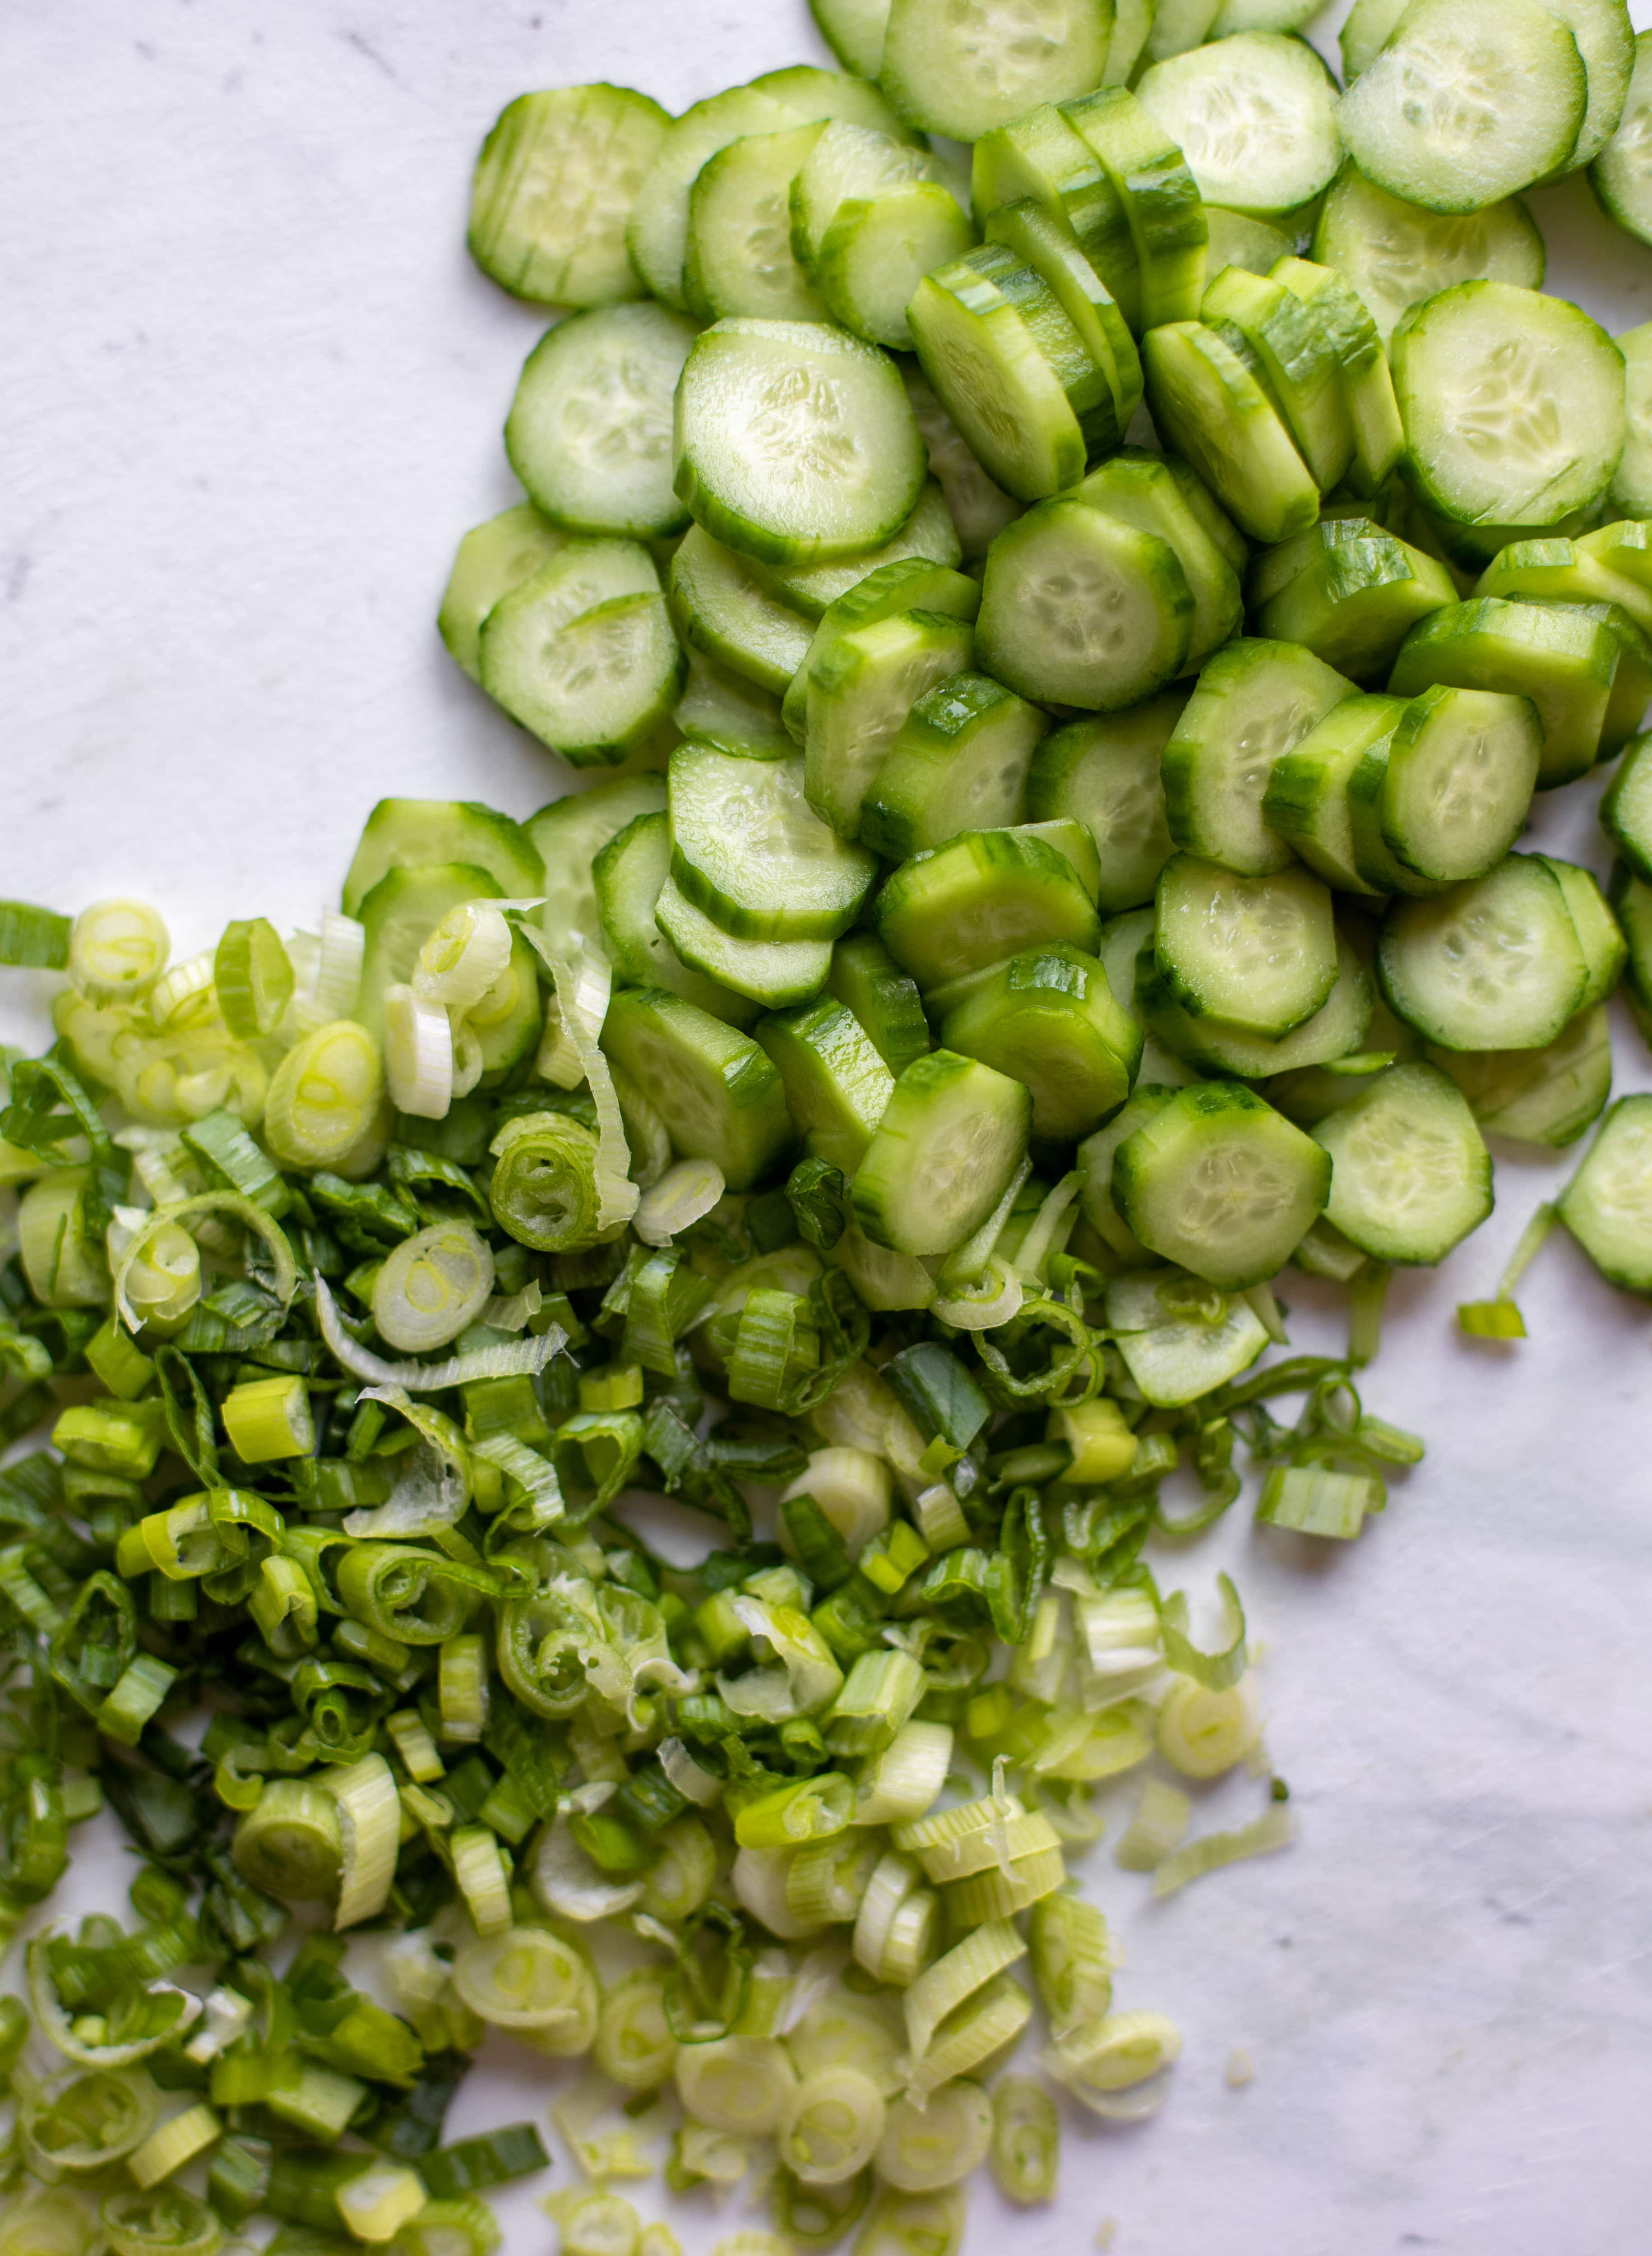 cucumbers and scallions